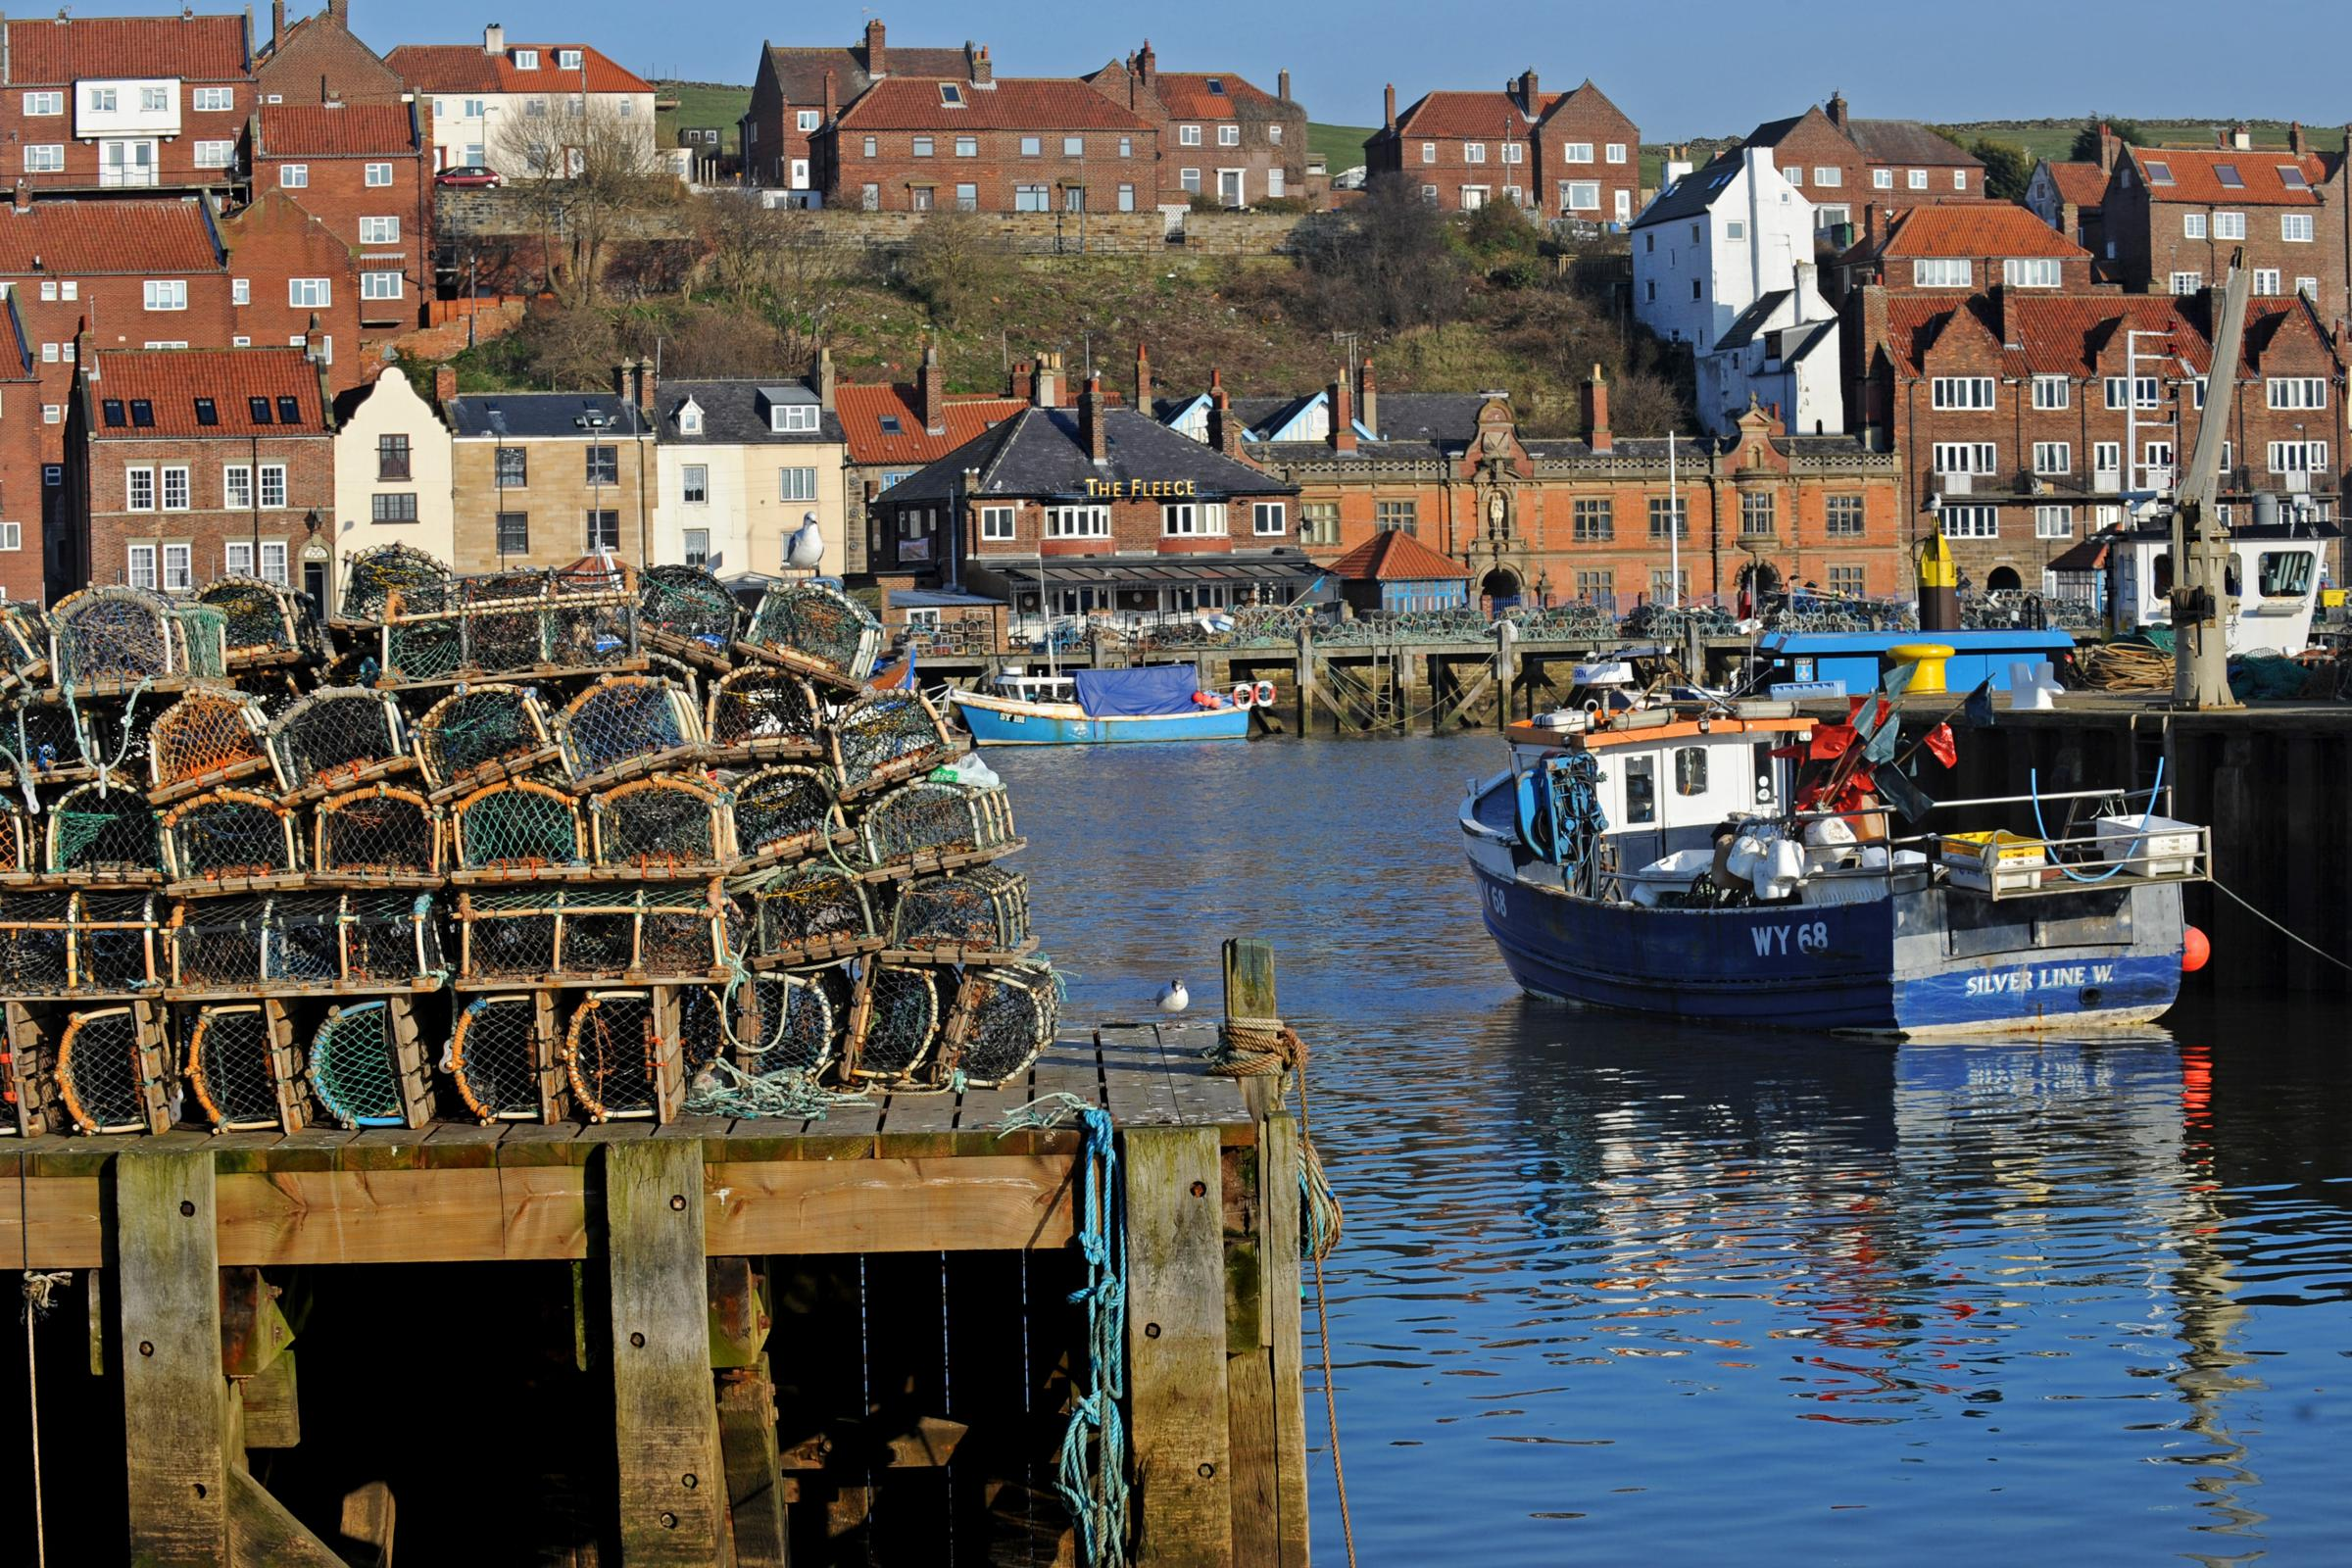 The Star Inn The Harbour has opened in Whitby